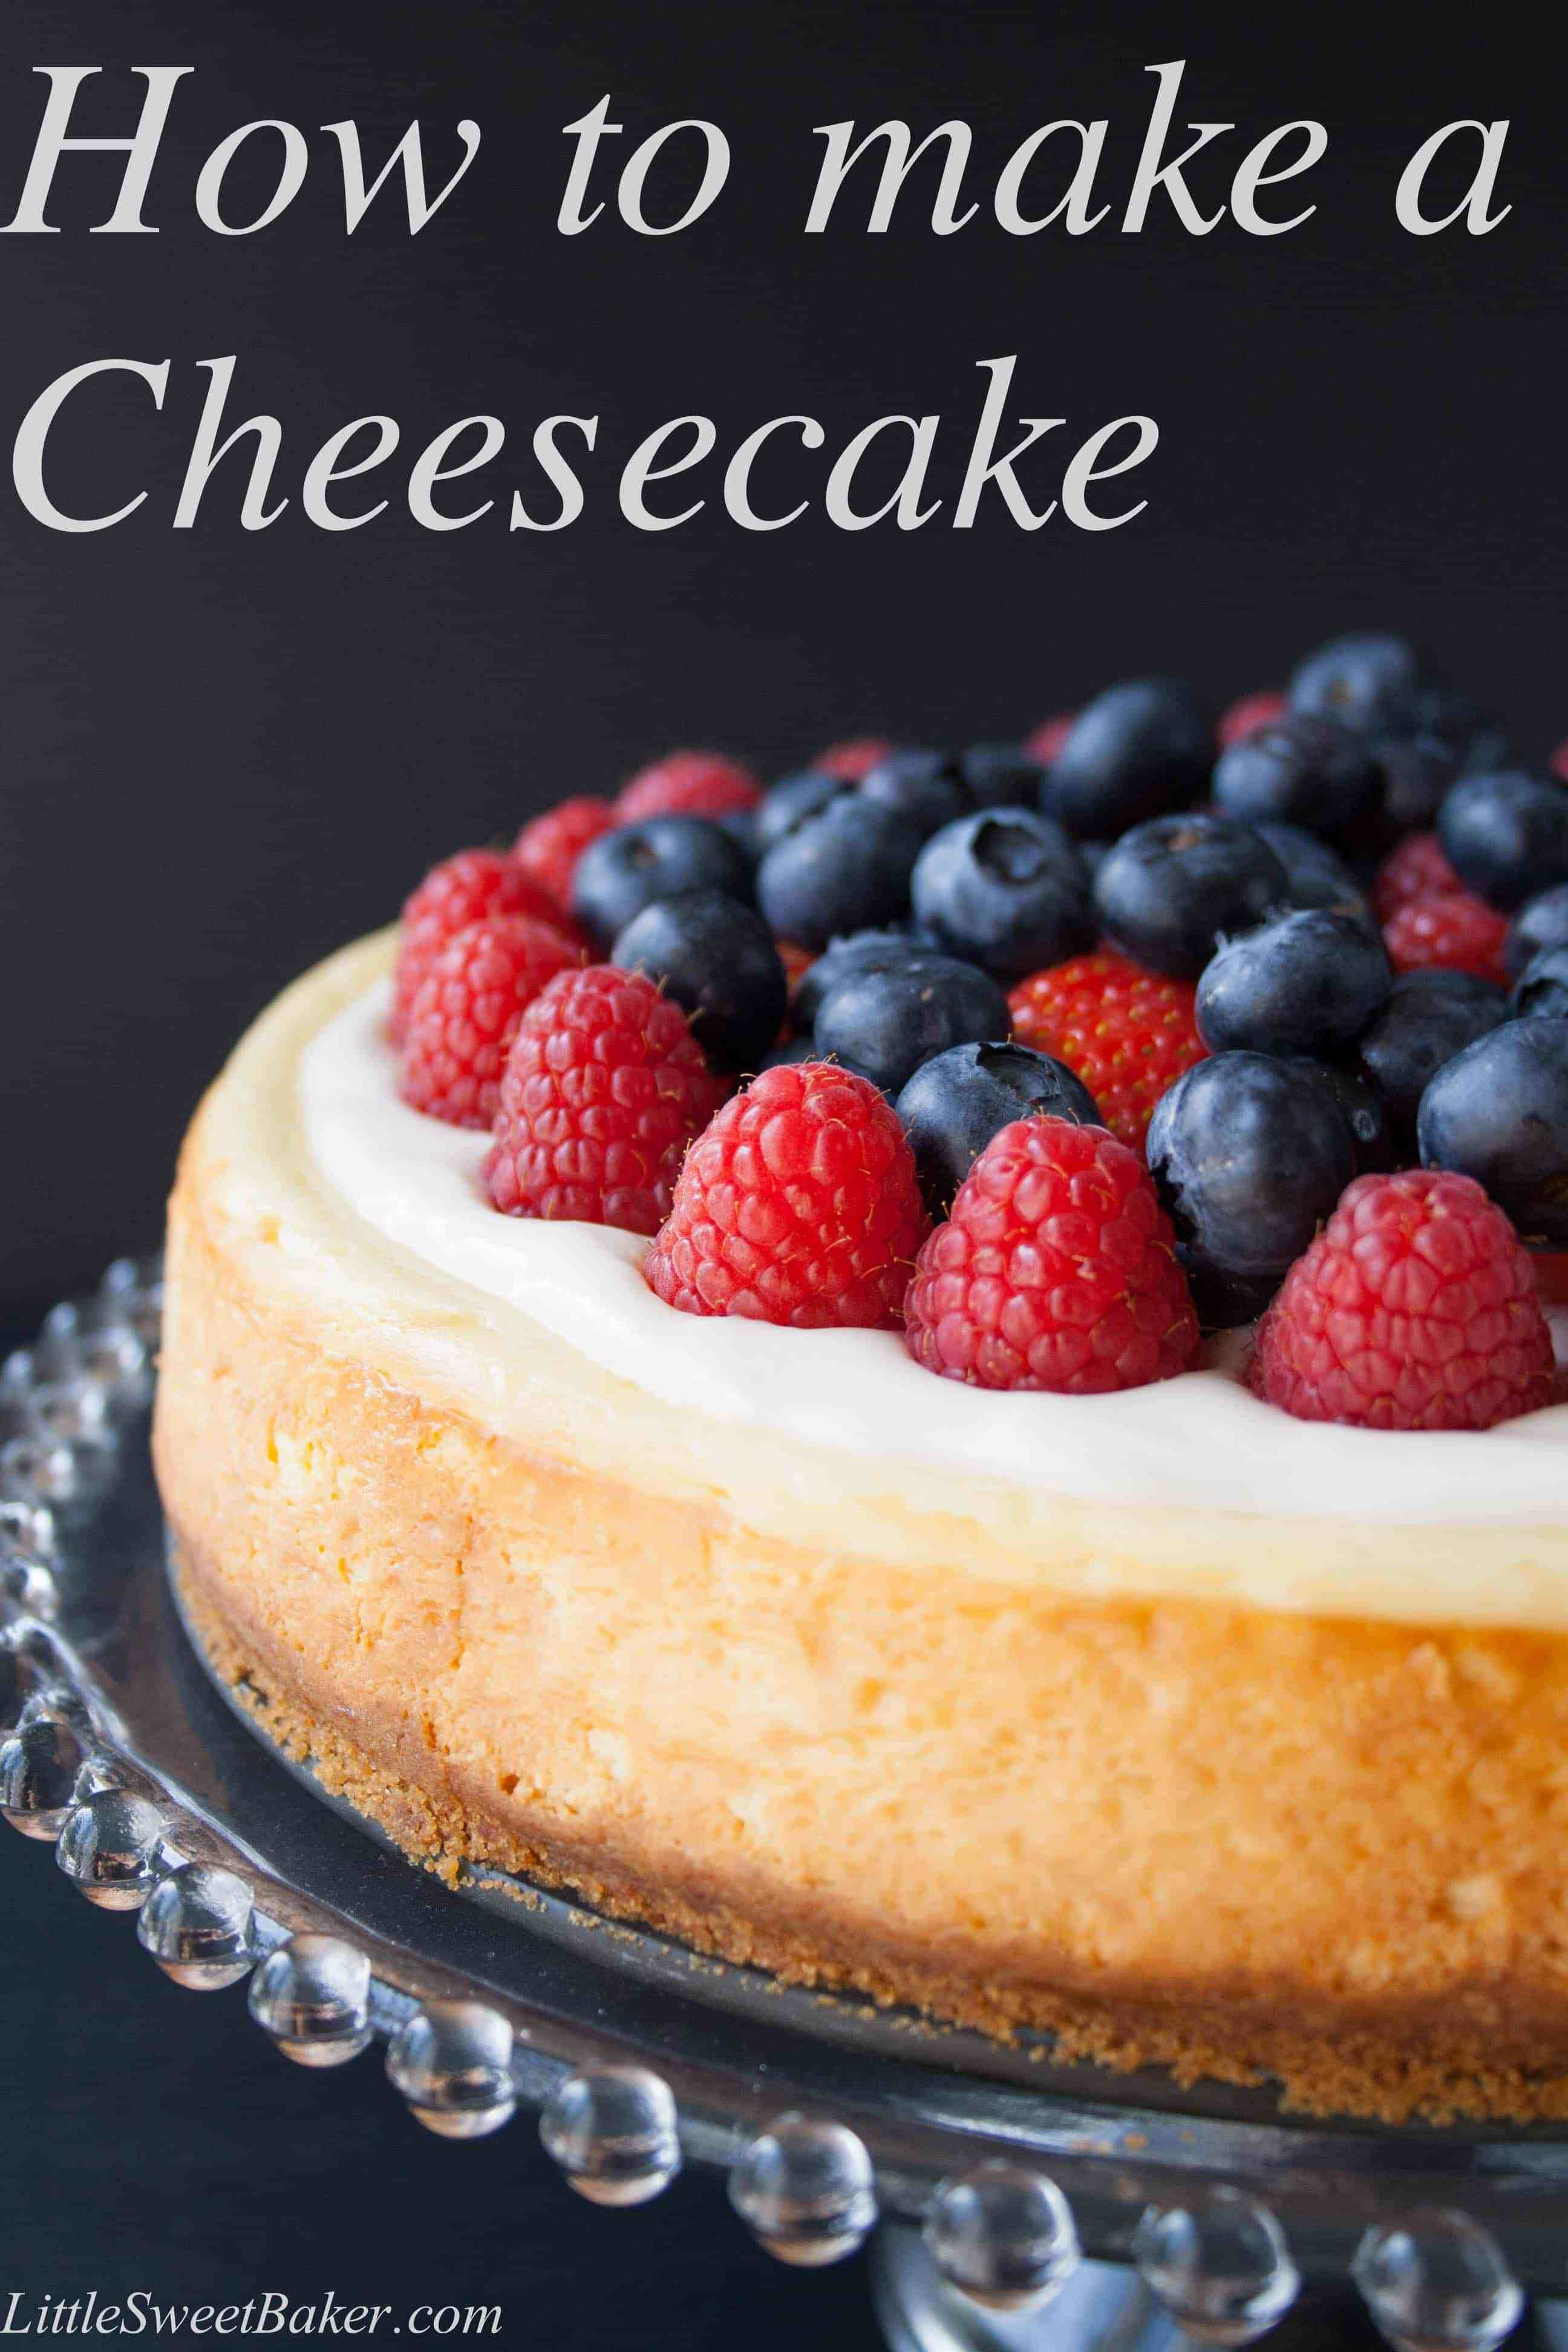 How To Make Cheese Cake  How To Make A Cheesecake Little Sweet Baker